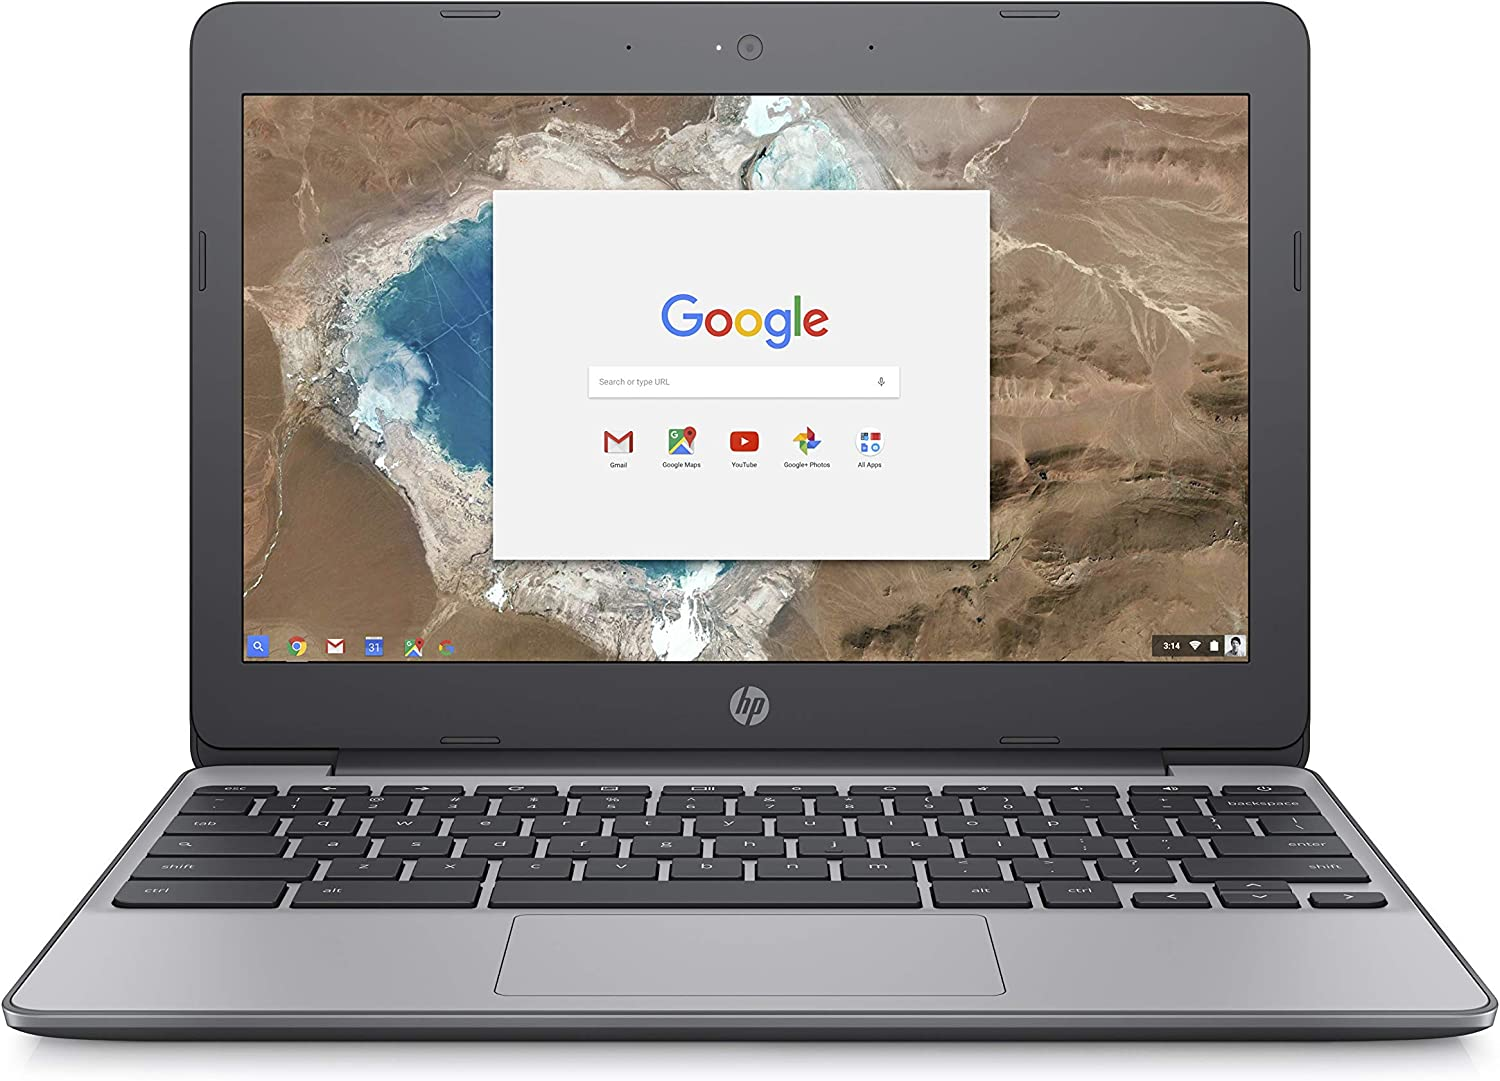 Amazon Com Hp Chromebook 11 Inch Laptop Intel Celeron N3060 Processor 2 Gb Sdram 16 Gb Emmc Storage Chrome Os 11 V000nr Ash Gray Computers Accessories